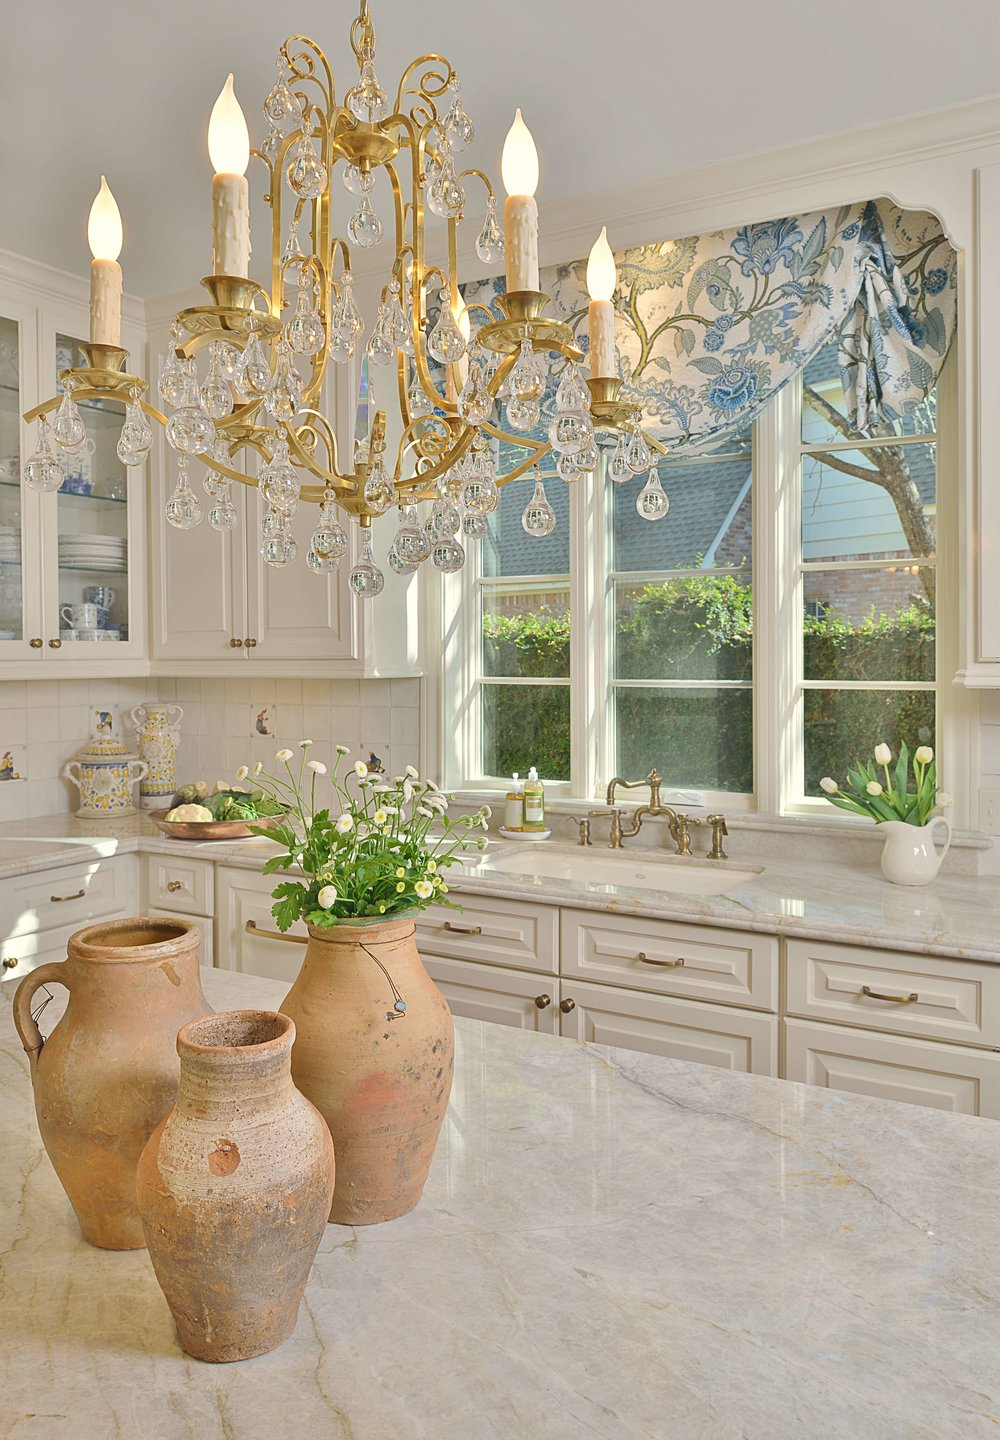 Kitchen Remodel - Designer: Carla Aston #pendantlighting #kitchenlighting #chandelier